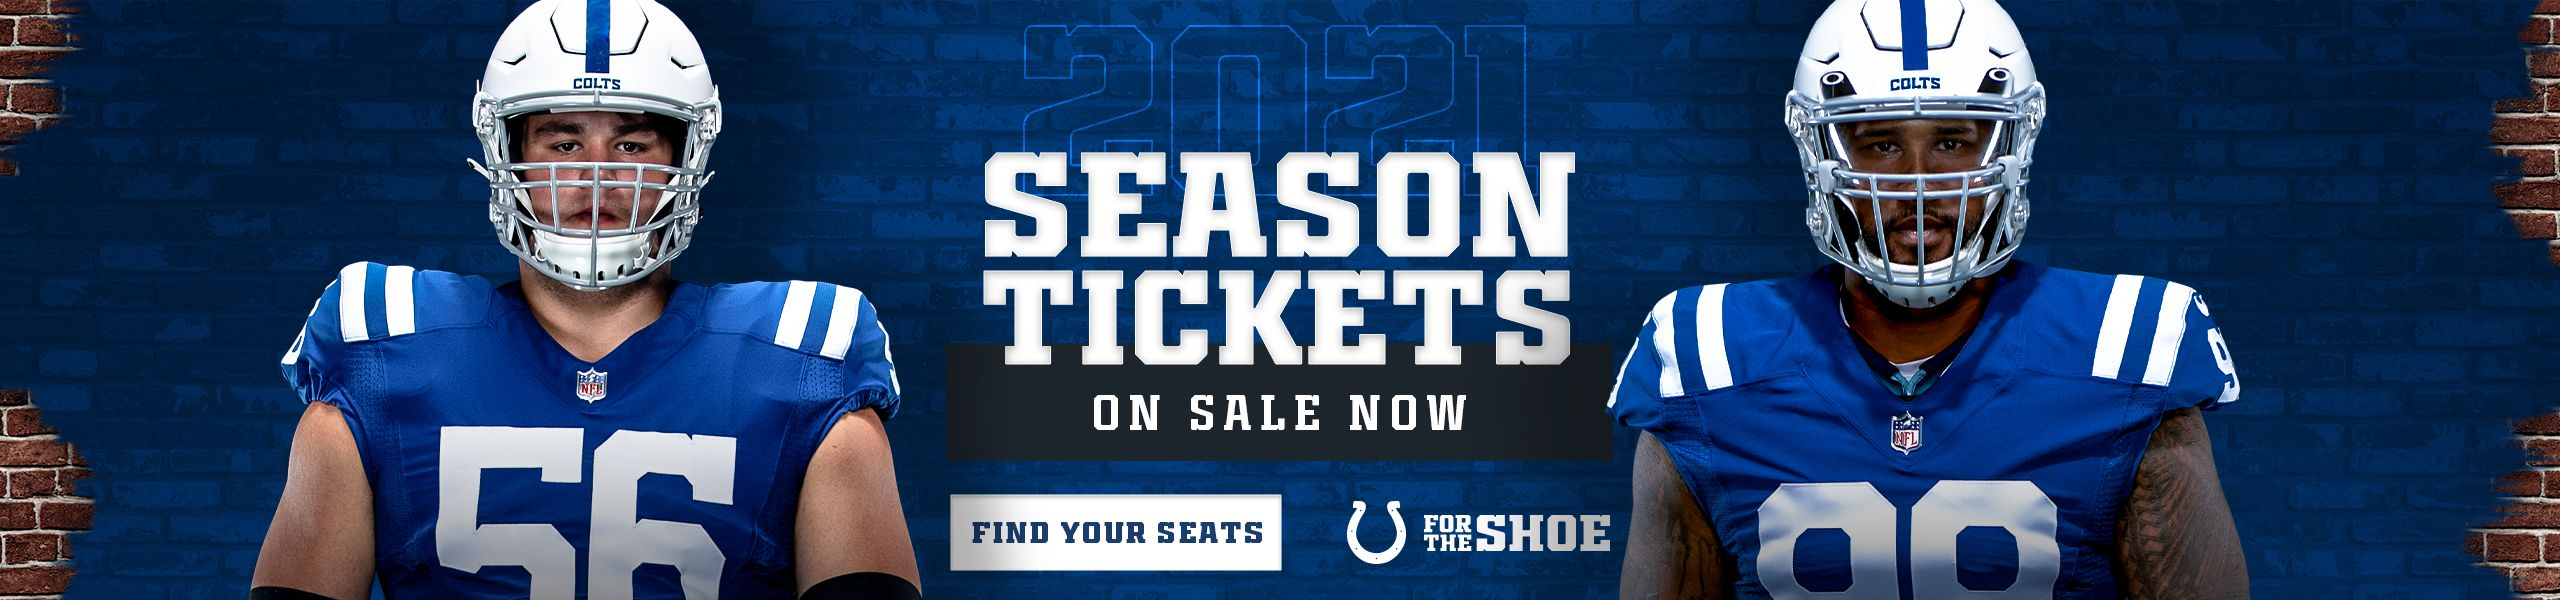 Season_Tickets-on_sale-2560x600 Header